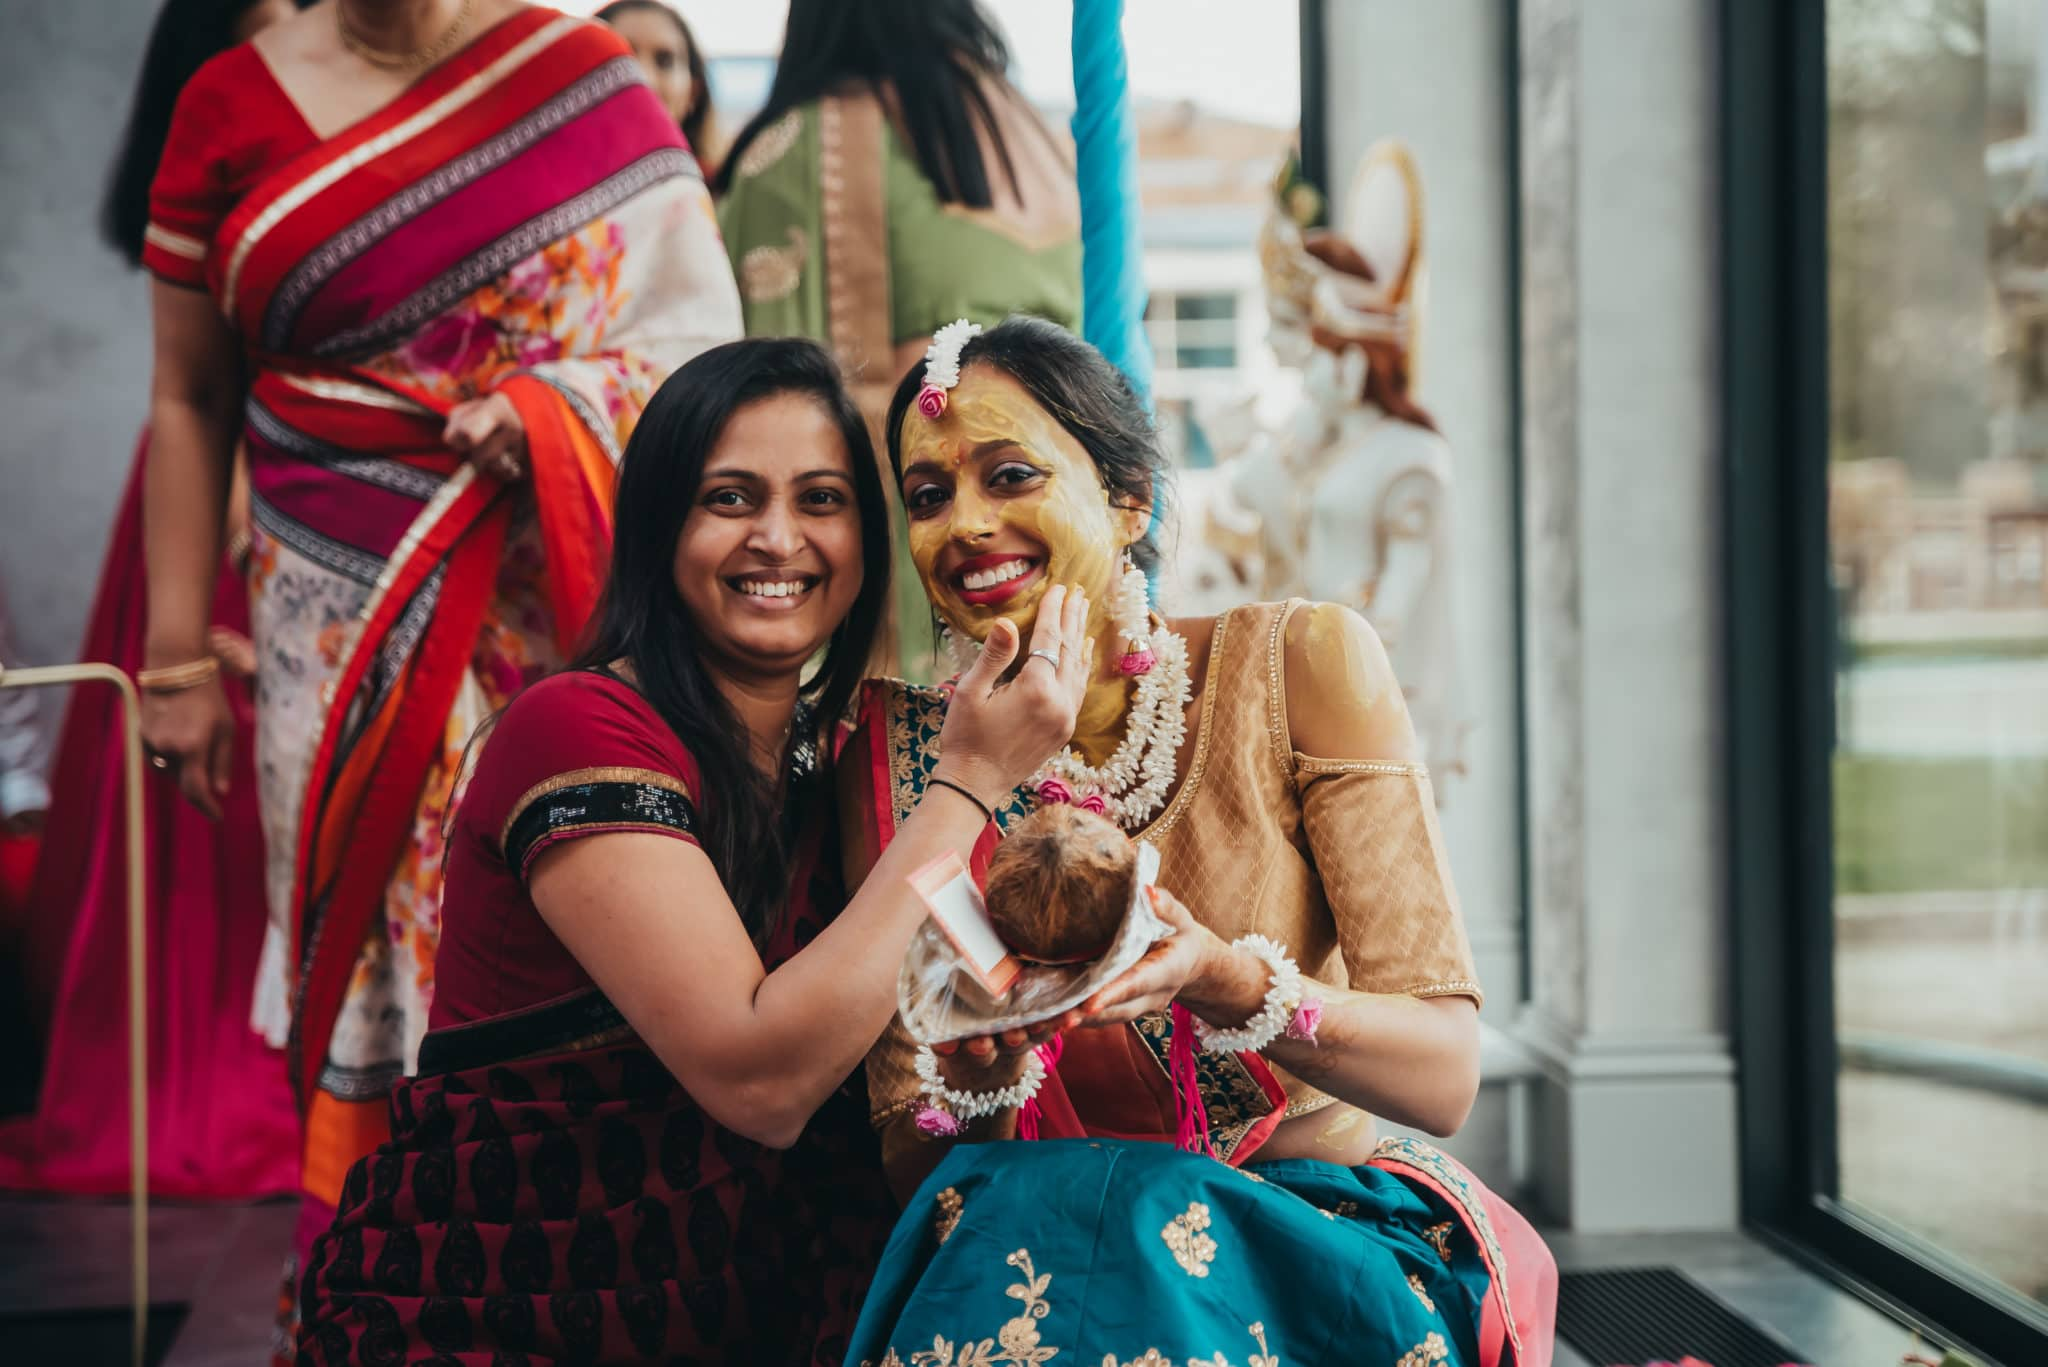 Pithi ceremony in an Indian wedding ceremony, Barnet, Potters Bar London